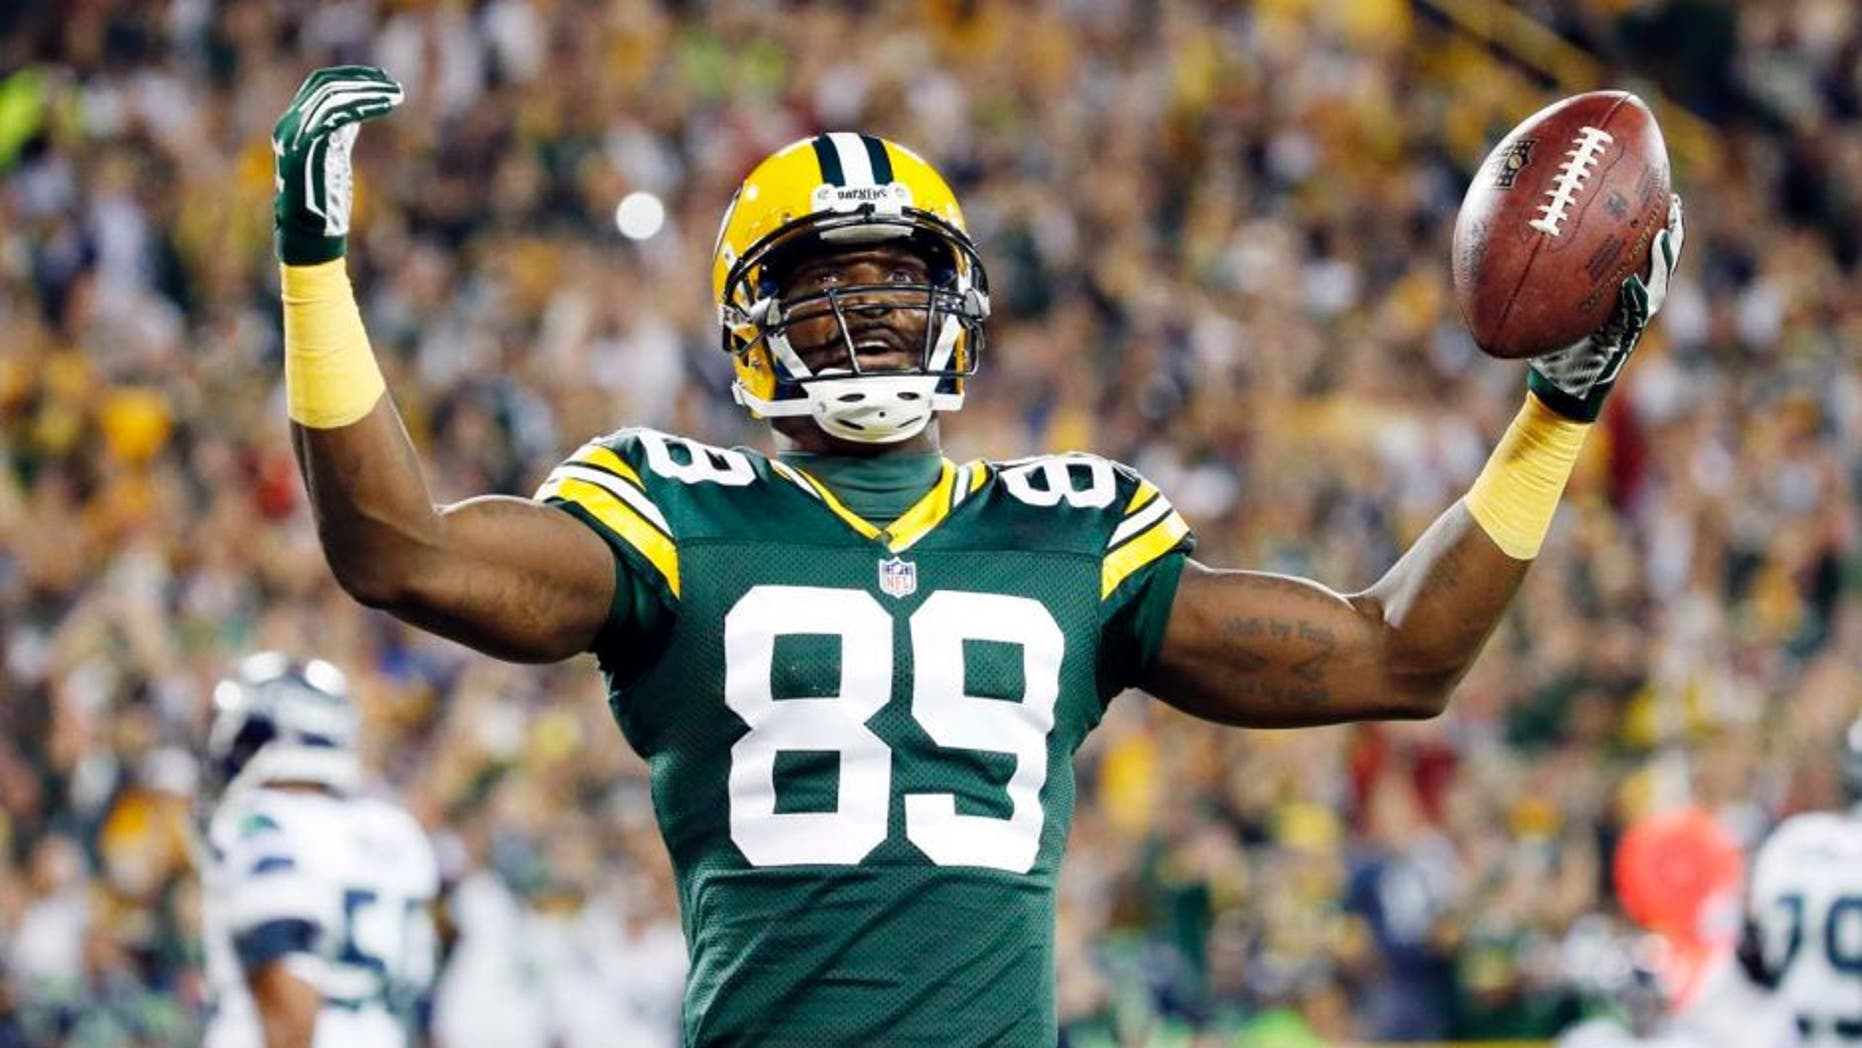 The Green Bay Packers' James Jones celebrates a touchdown catch during the first half of an NFL football game against the Seattle Seahawks on Sunday, Sept. 20, 2015, in Green Bay, Wis.